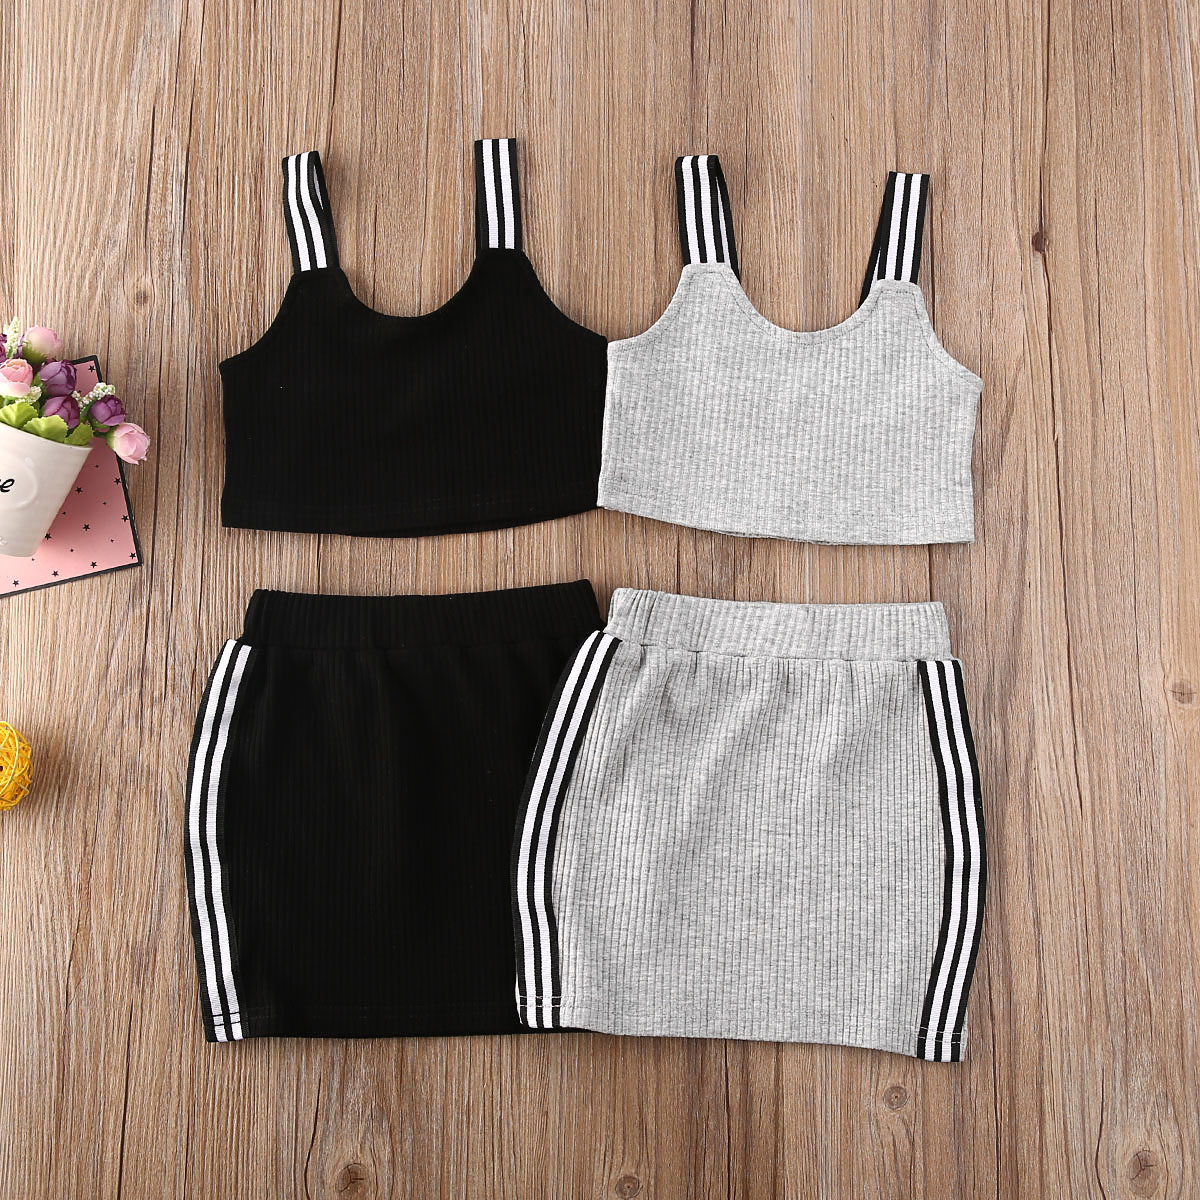 Pudcoco US Stock 0-5 Years Fashion Toddler Kid Baby Girl Dress Set Vest Tank Top Solid Skirt Summer Outfits Clothes